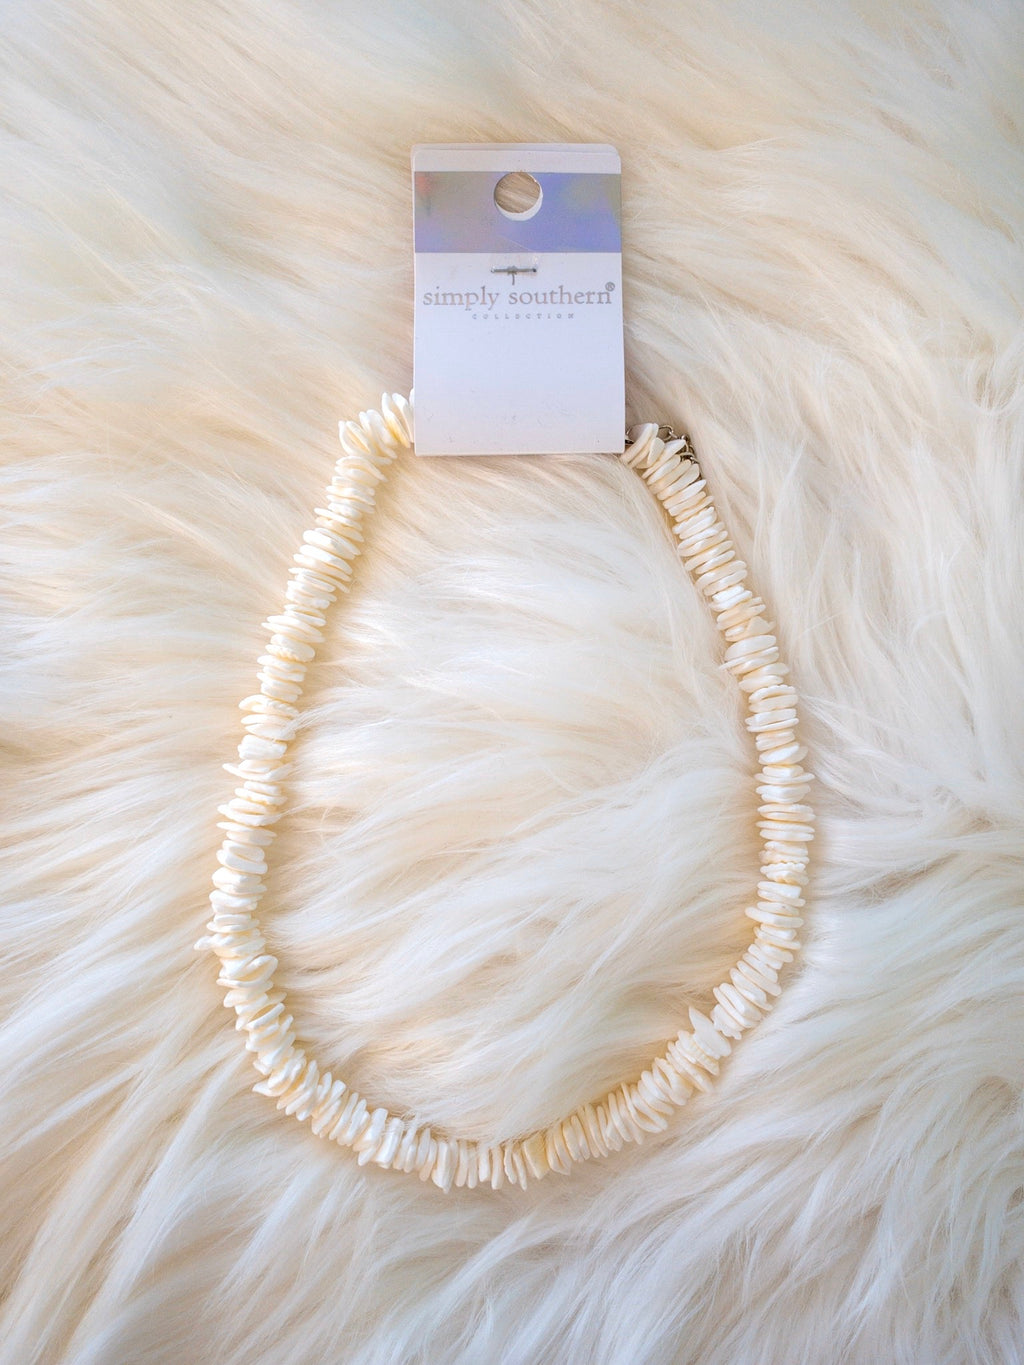 Simply Southern White Puka Shell Necklace - Monogram Gifts